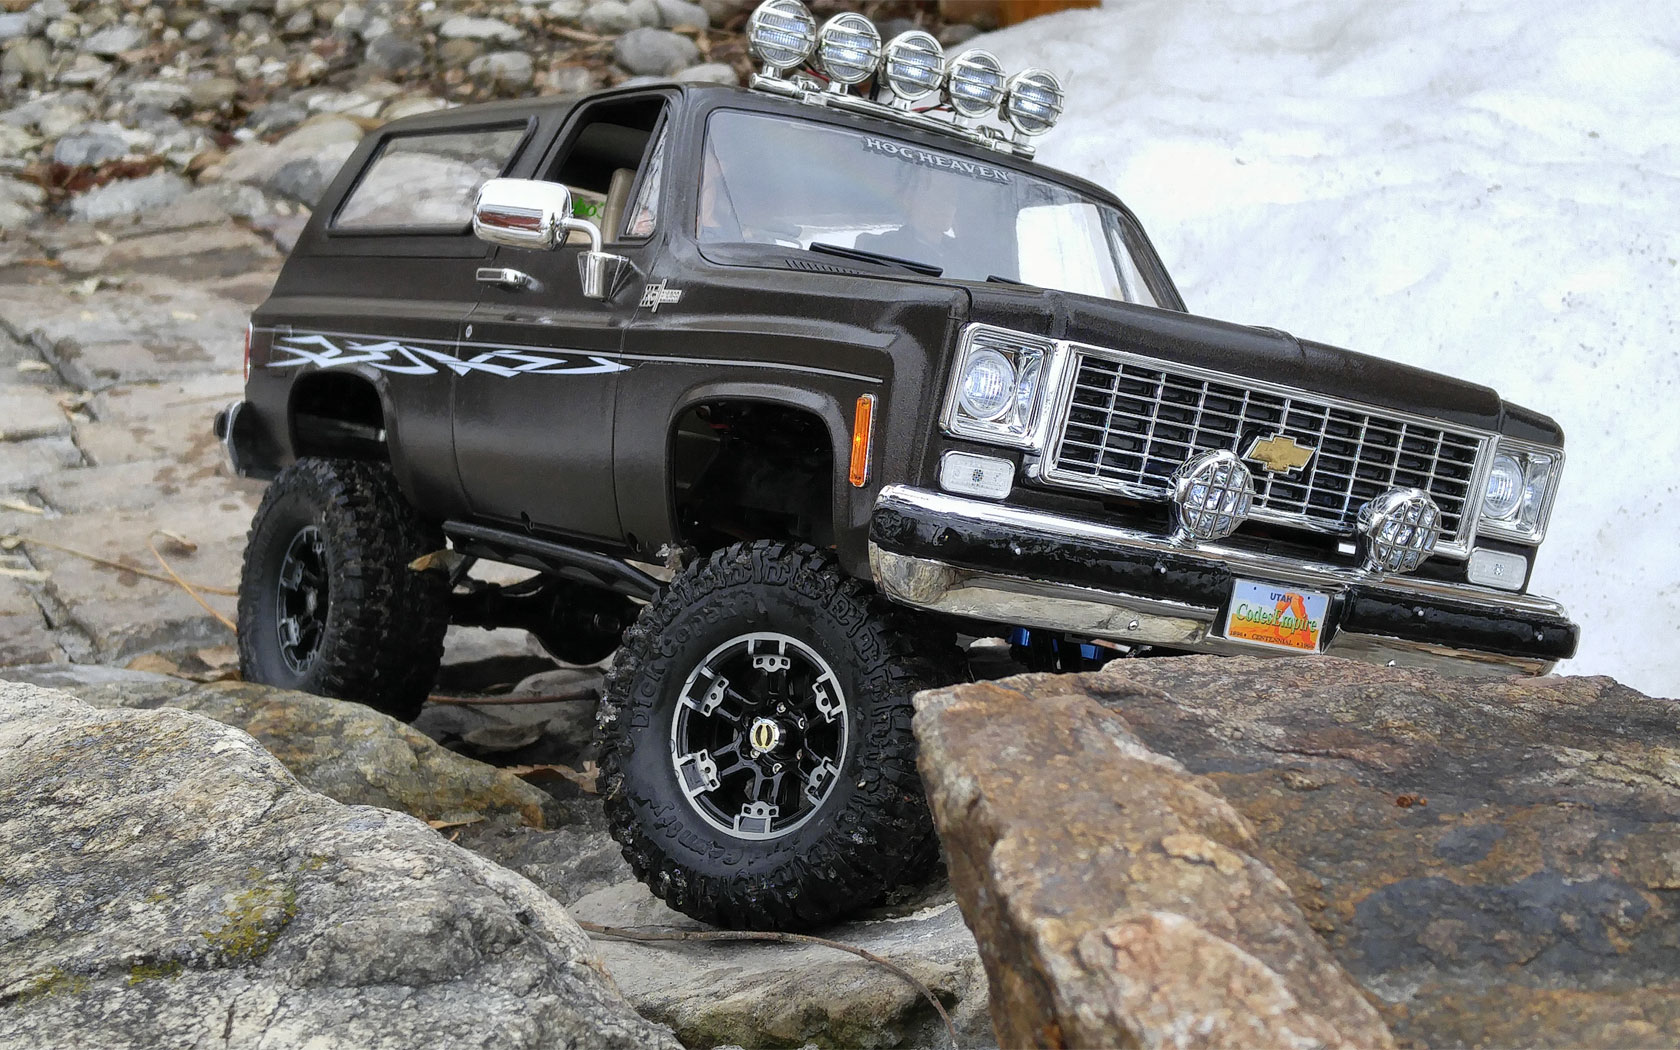 http://www.rc4wd.co.uk/product/Chevy-Blazer-01.jpg